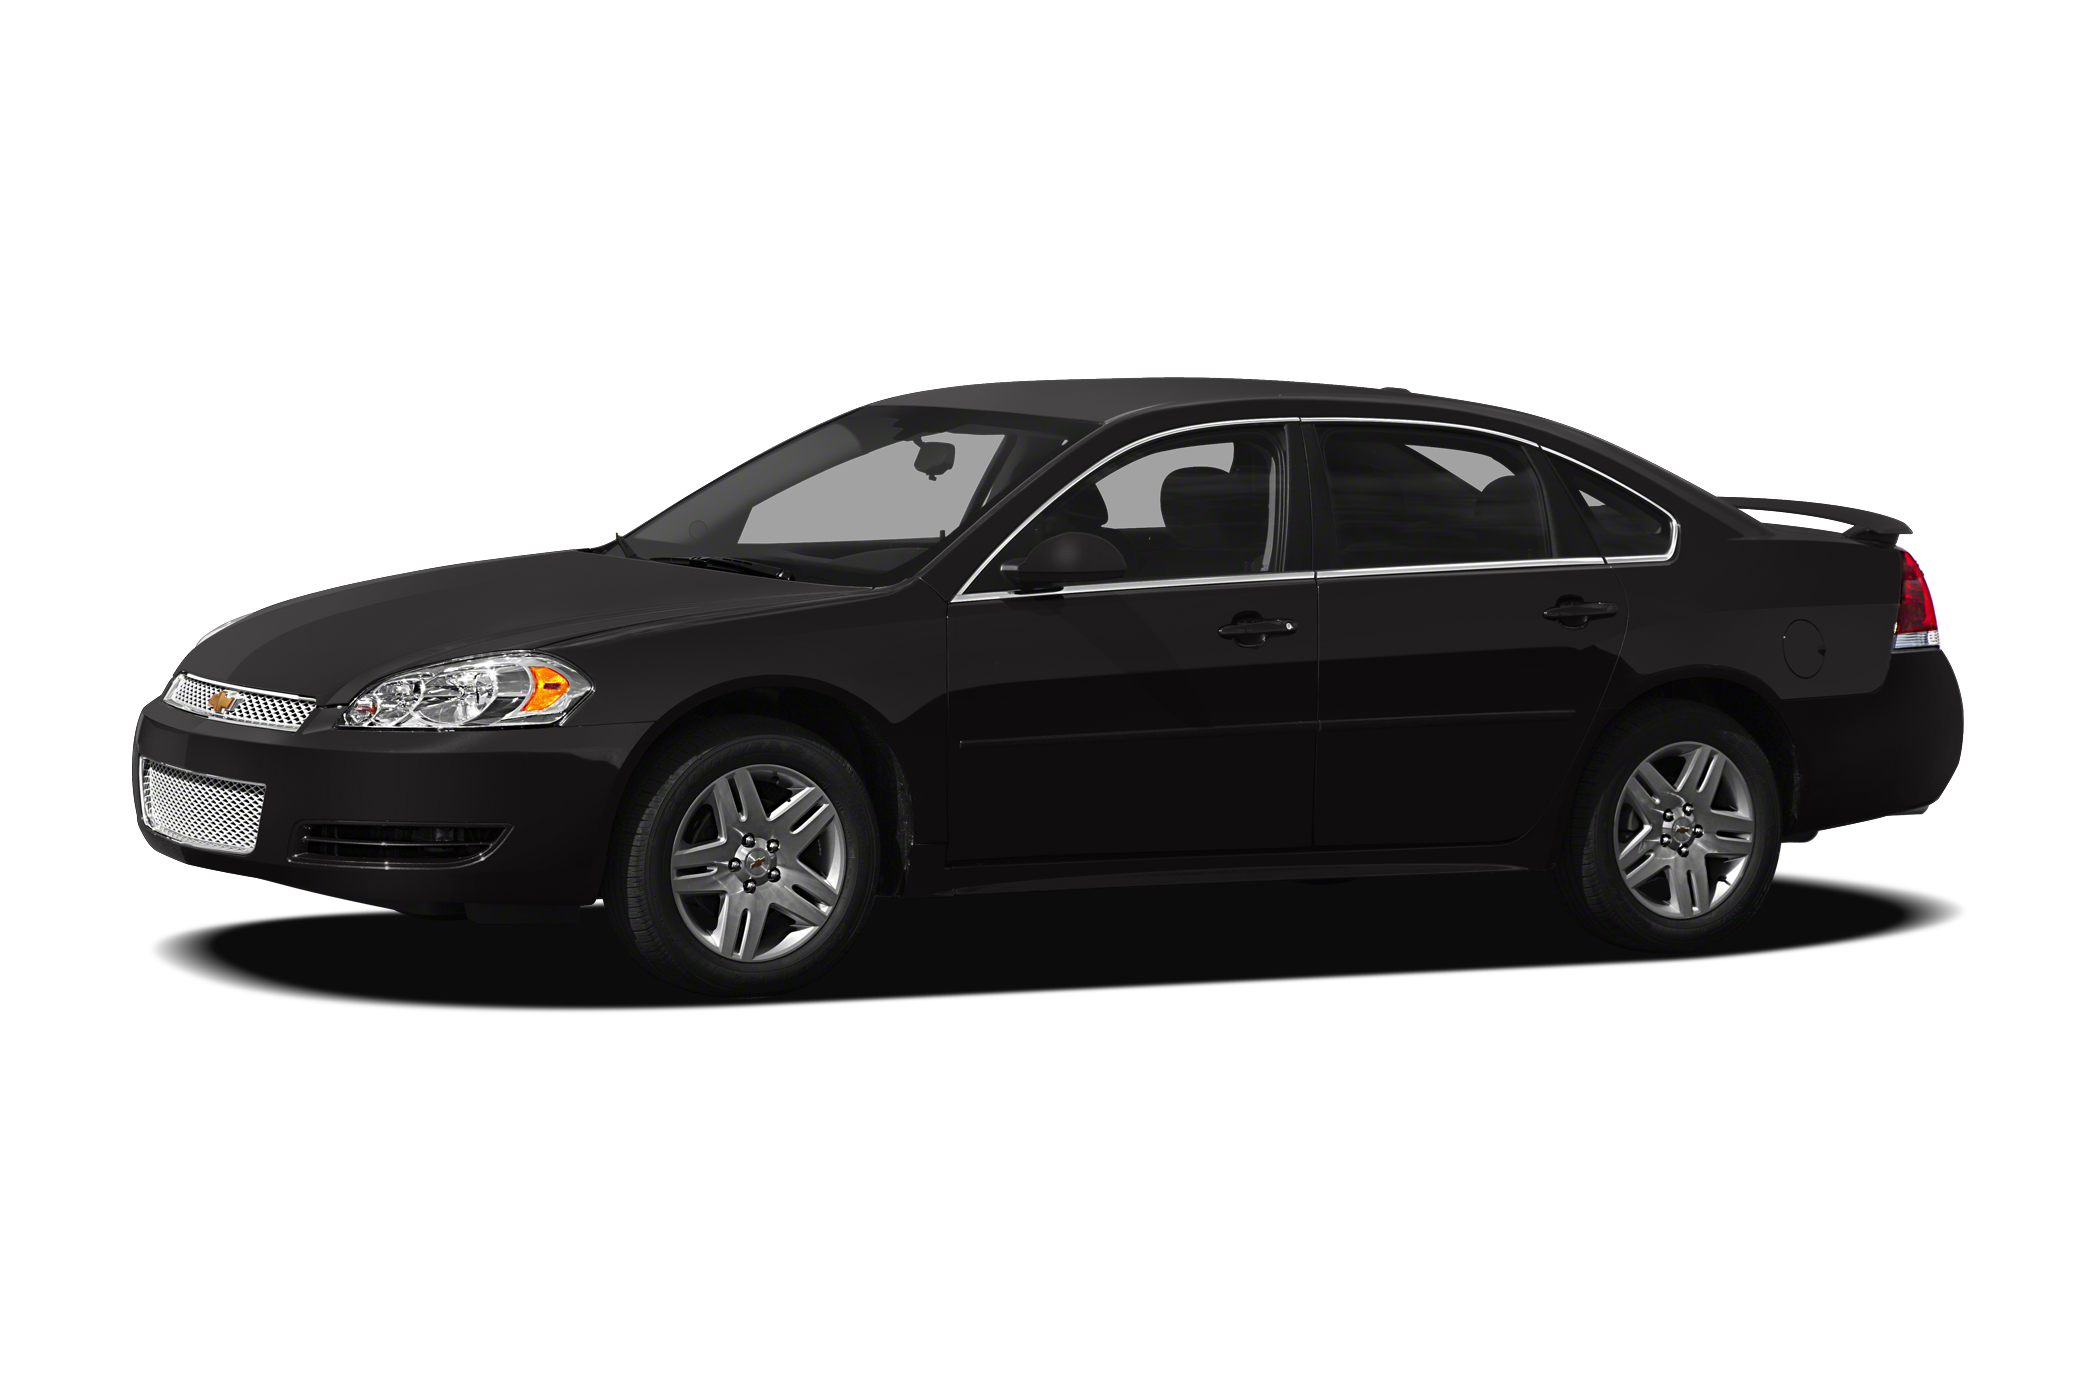 2012 Chevrolet Impala LT Sedan for sale in Columbia for $12,991 with 51,385 miles